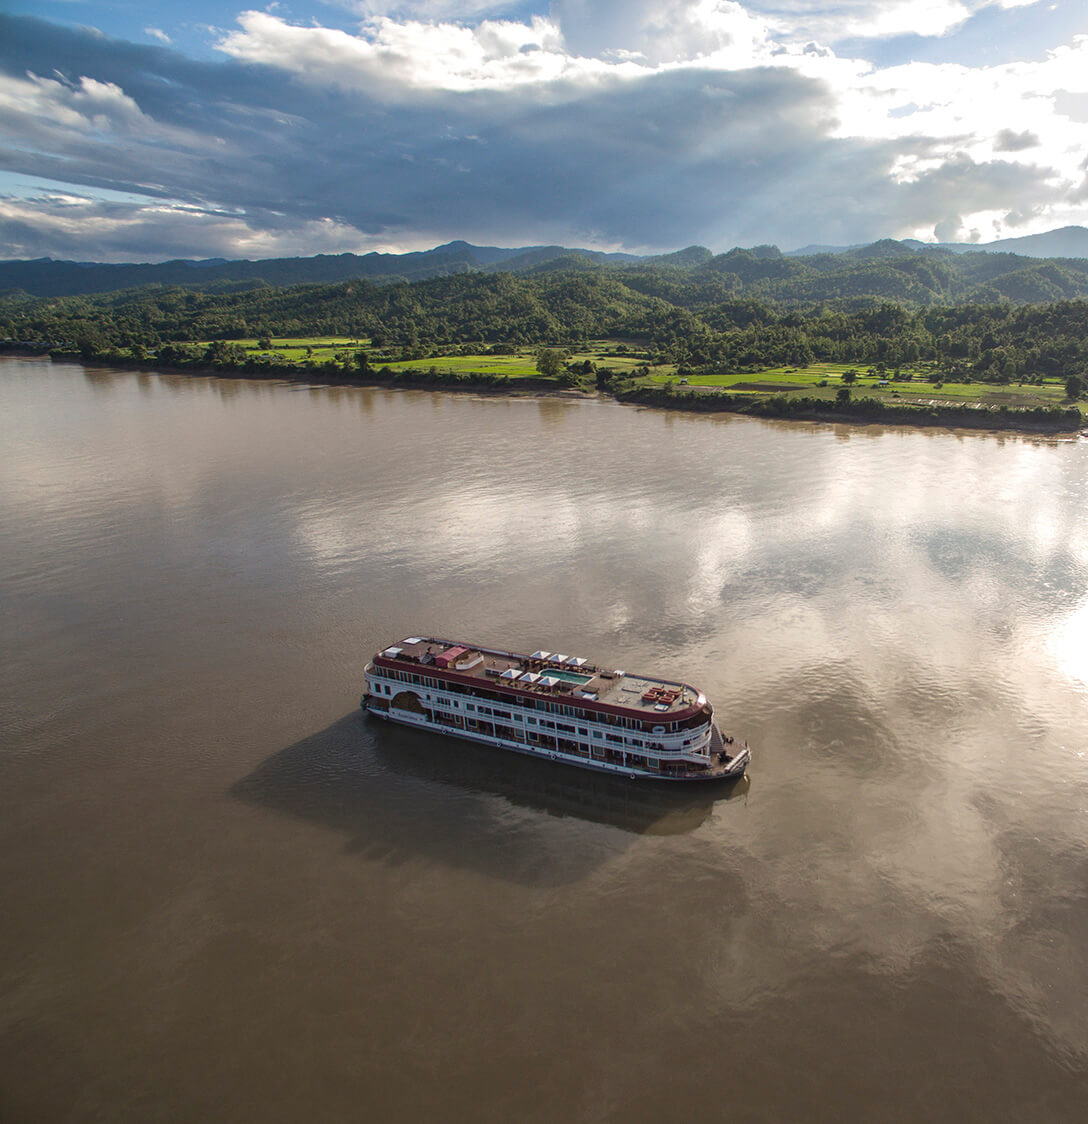 Heritage Line Anawrahta sails the remote Chindwin River